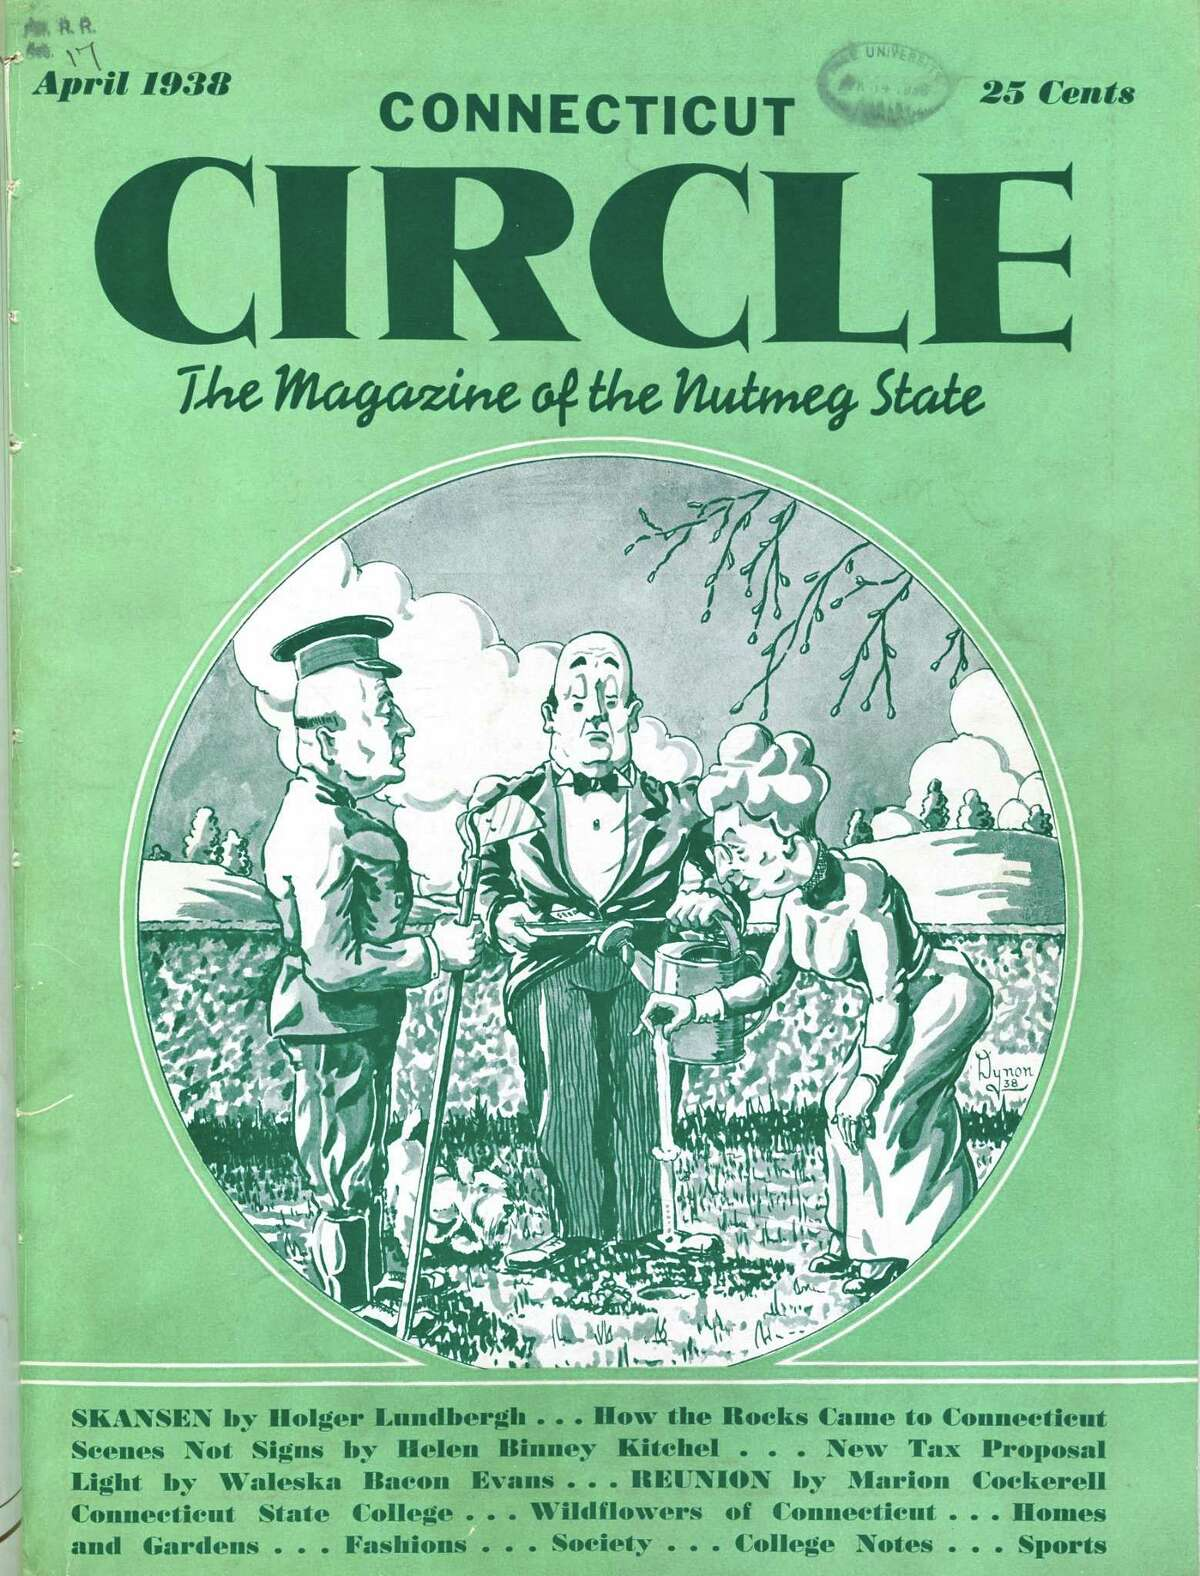 Connecticut Circle: The Magazine of the Nutmeg State, April 1938